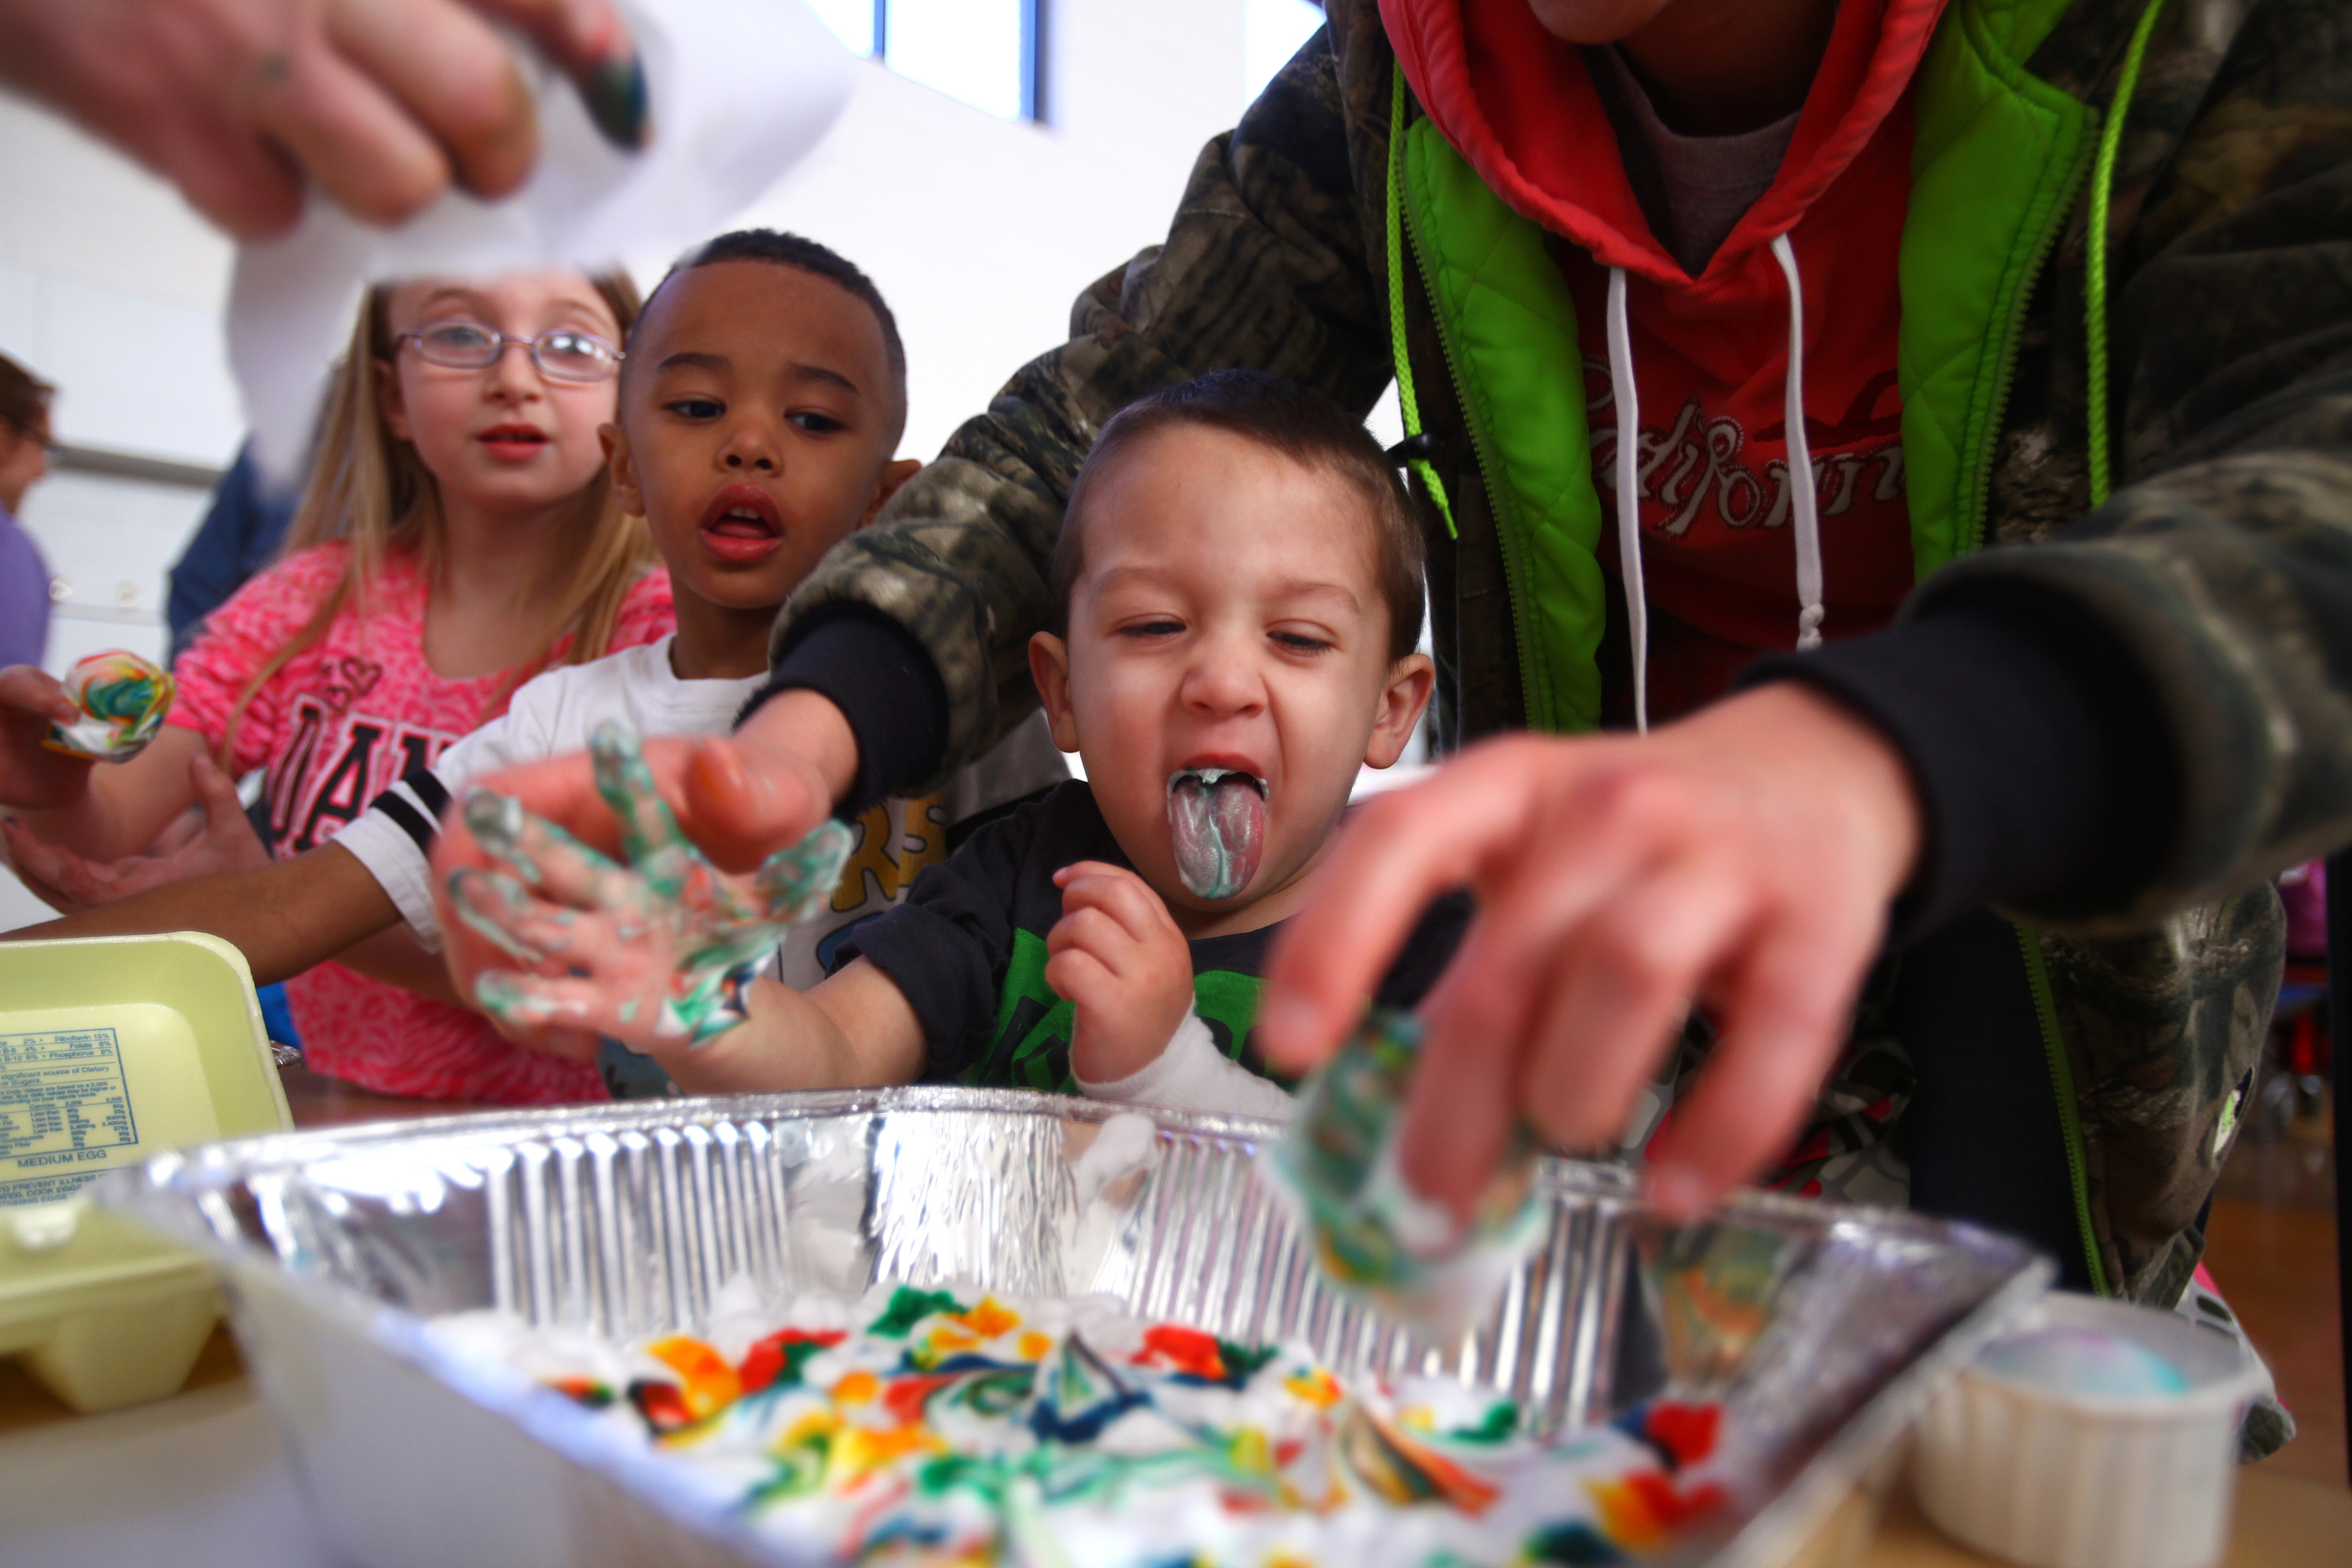 Emerick Hobby, 2, sticks out his tongue after eating a handful of food coloring and shaving cream while dying an Easter Egg with the help of his mother at Orchard View Early Elementary Saturday, March 28, 2015. Emerick's brother Bentlee Hobby, 4, and friend Skylar Wright, 9, look over his shoulder to see what he has done.